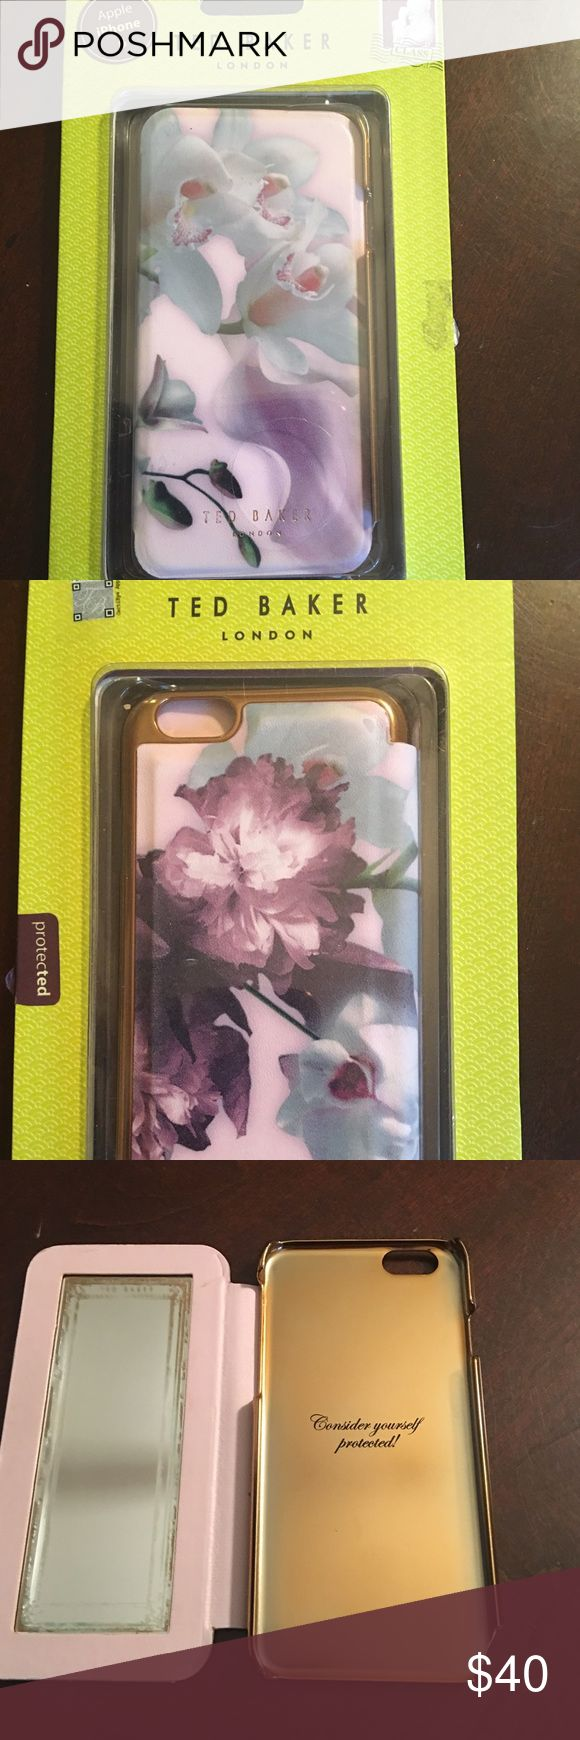 🌺🎀Ted Baker Designer IPhone 6 Cellphone Case🌺🎀 🌺🎀Ted Baker IPhone 6 Case is a wonderful case!! Has inside mirror to check your hair, makeup etc... it also has a magnet in it to hold the mirror to back of phone while using this case is new but it does have a chip on base... still hold phone fine and barely noticeable..see pic 4 price is marked according to condition🌺🎀I have same exact case in 6plus for myself and I absolutely love it💞🌺 Ted Baker Accessories Phone Cases